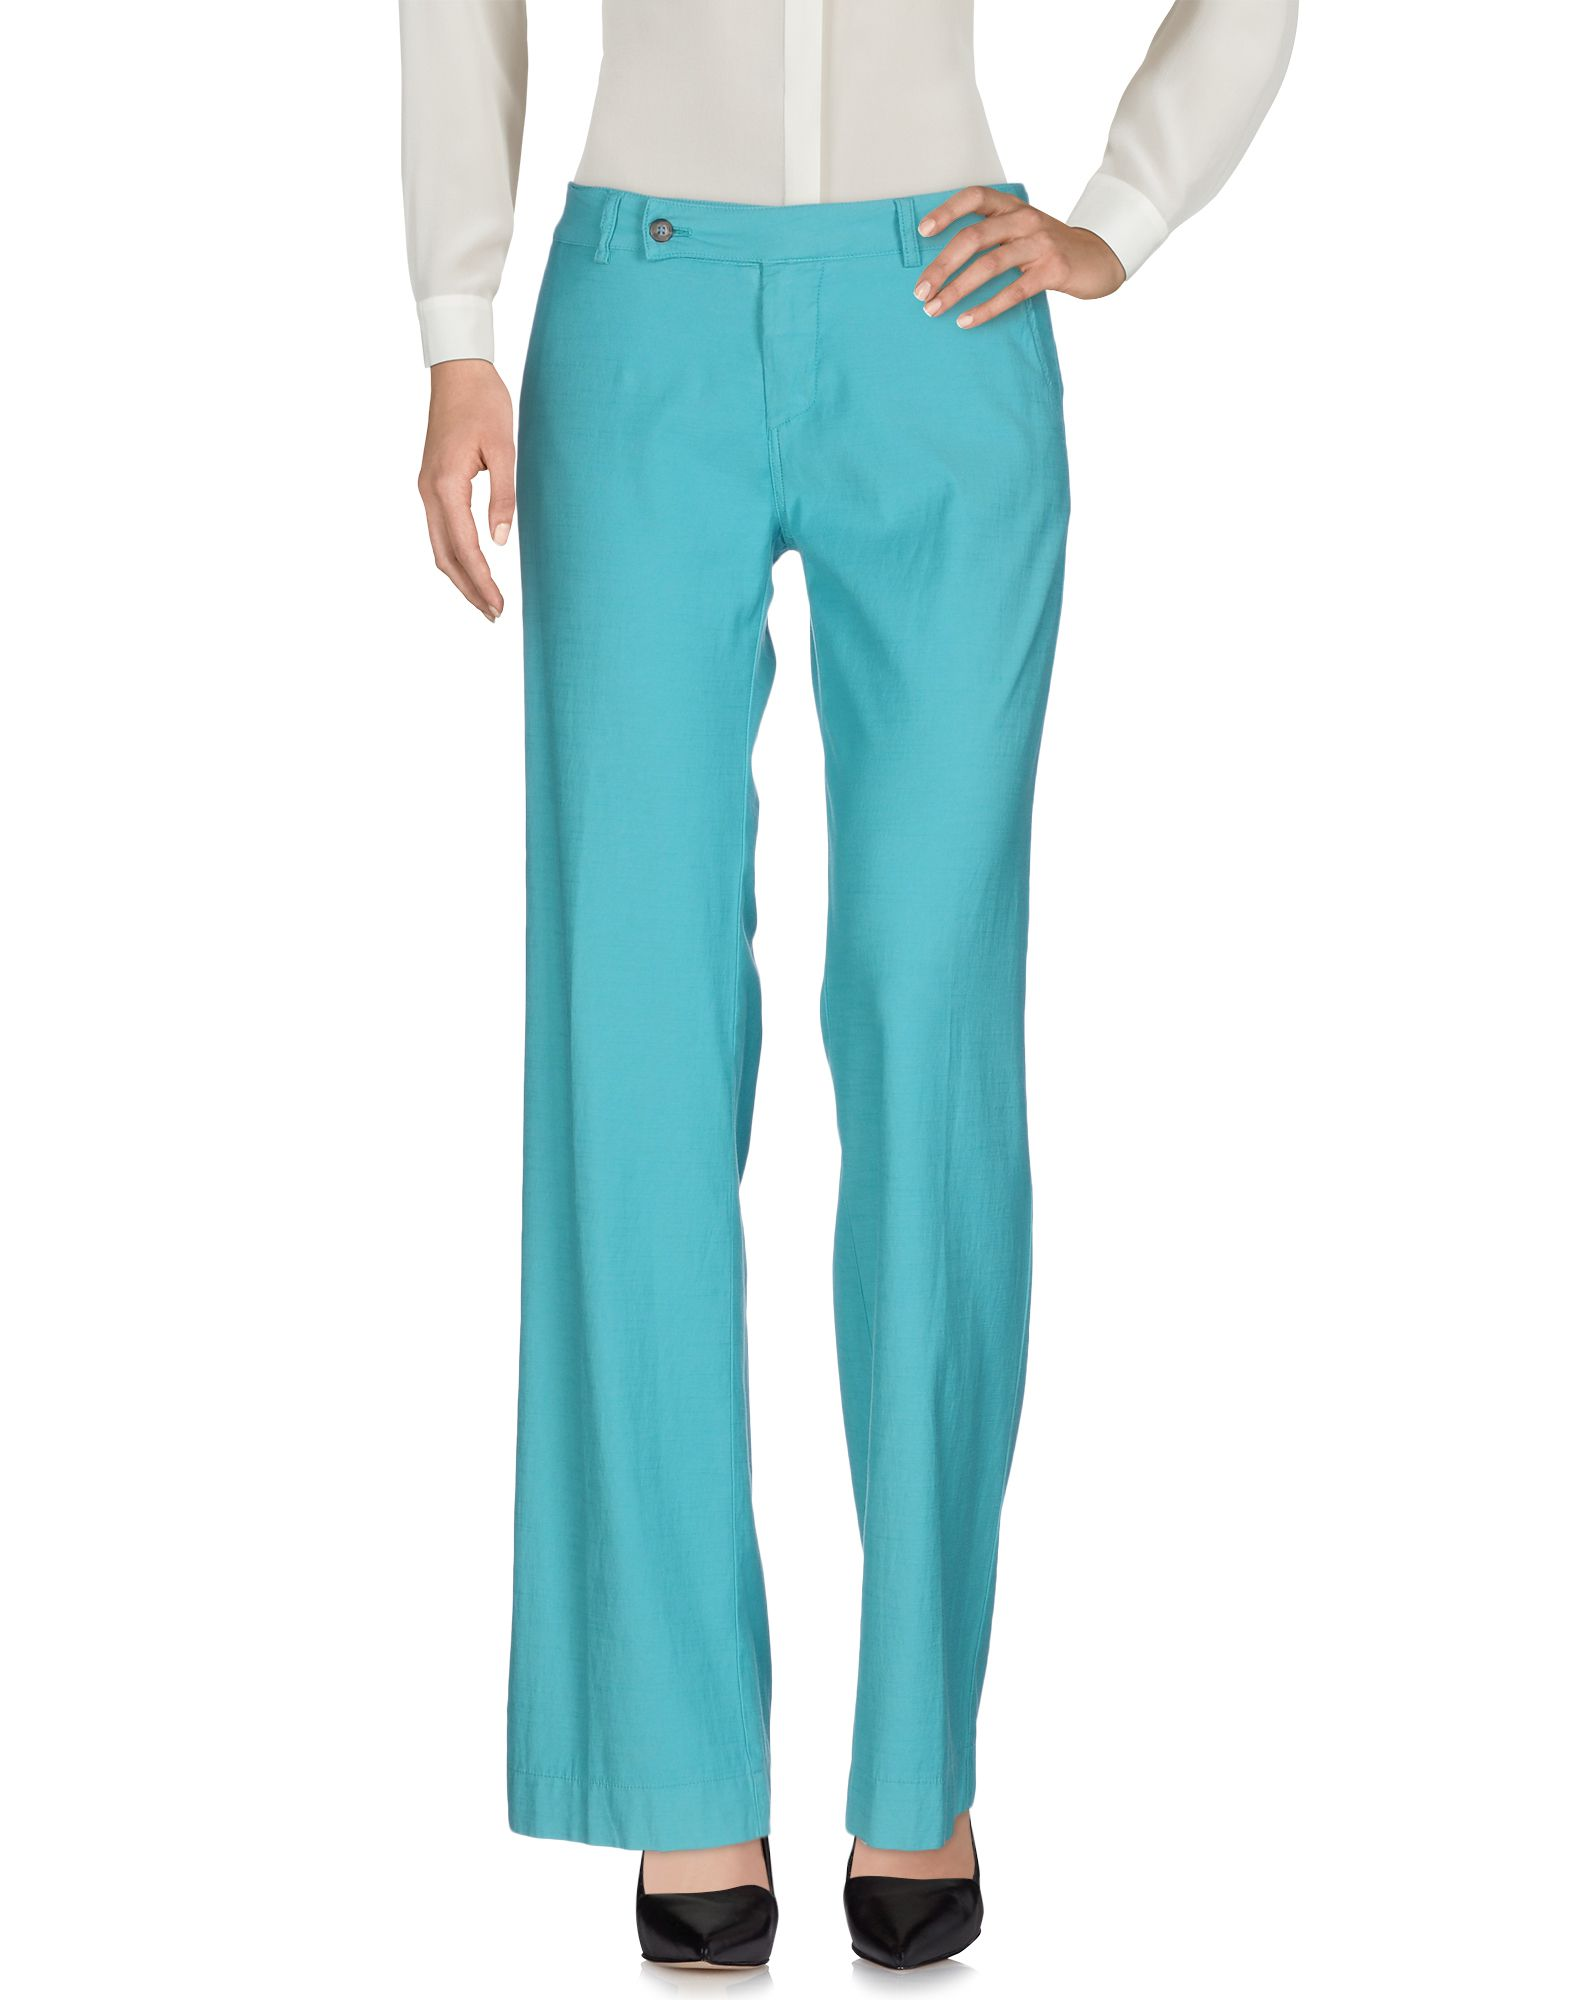 TRUE TRADITION Casual Pants in Turquoise